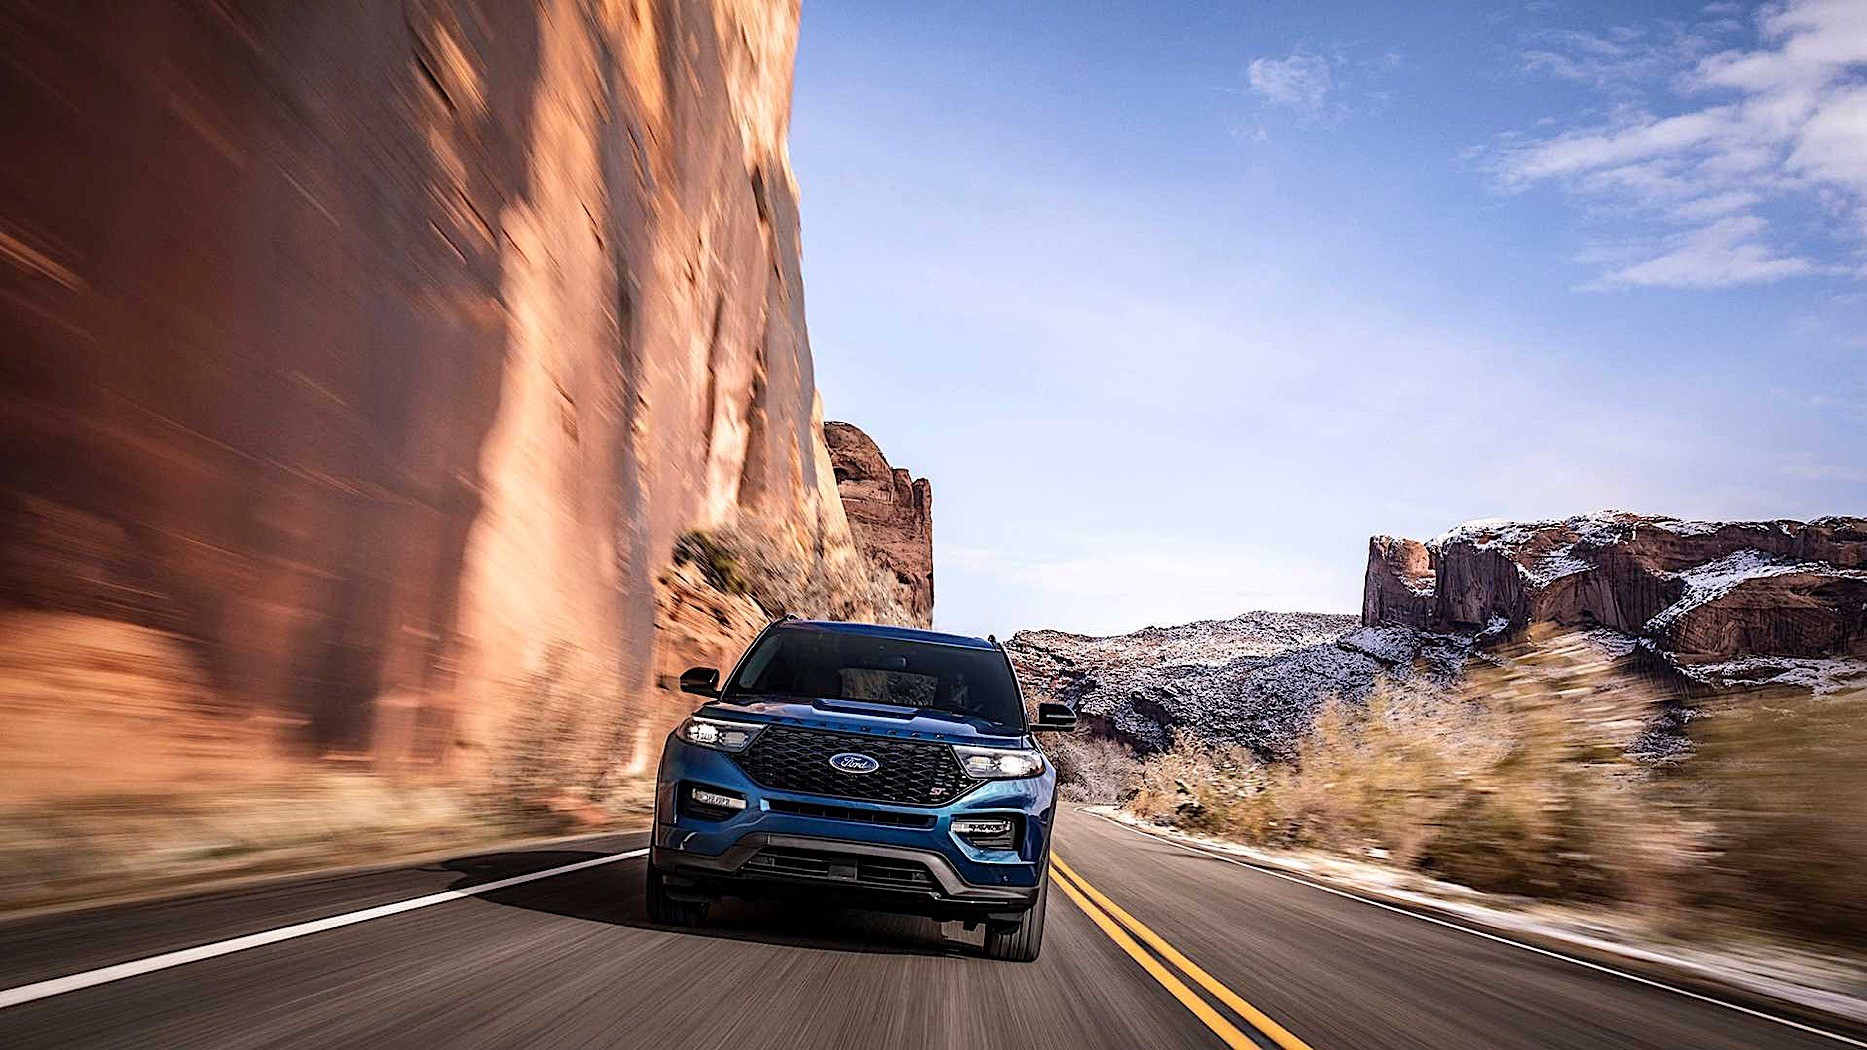 Bronco Cars Wallpaper 2020 Ford Explorer St Comes Into The World As The Most